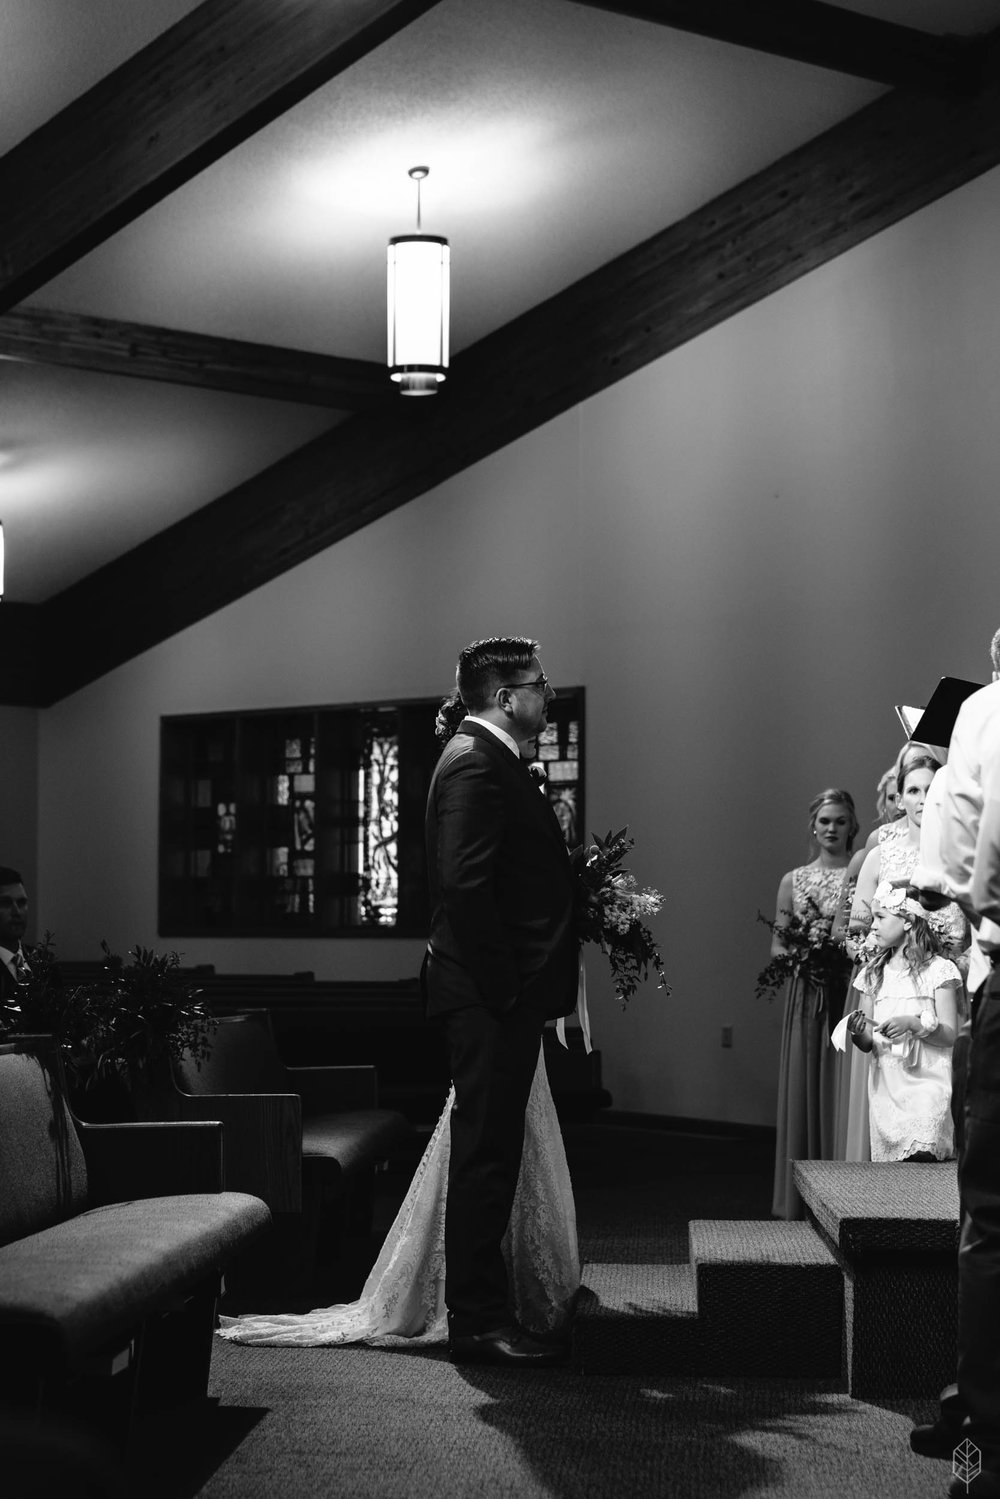 Wedding, Iowa wedding photographer, photos, wedding photography, midwest, neal and paige price